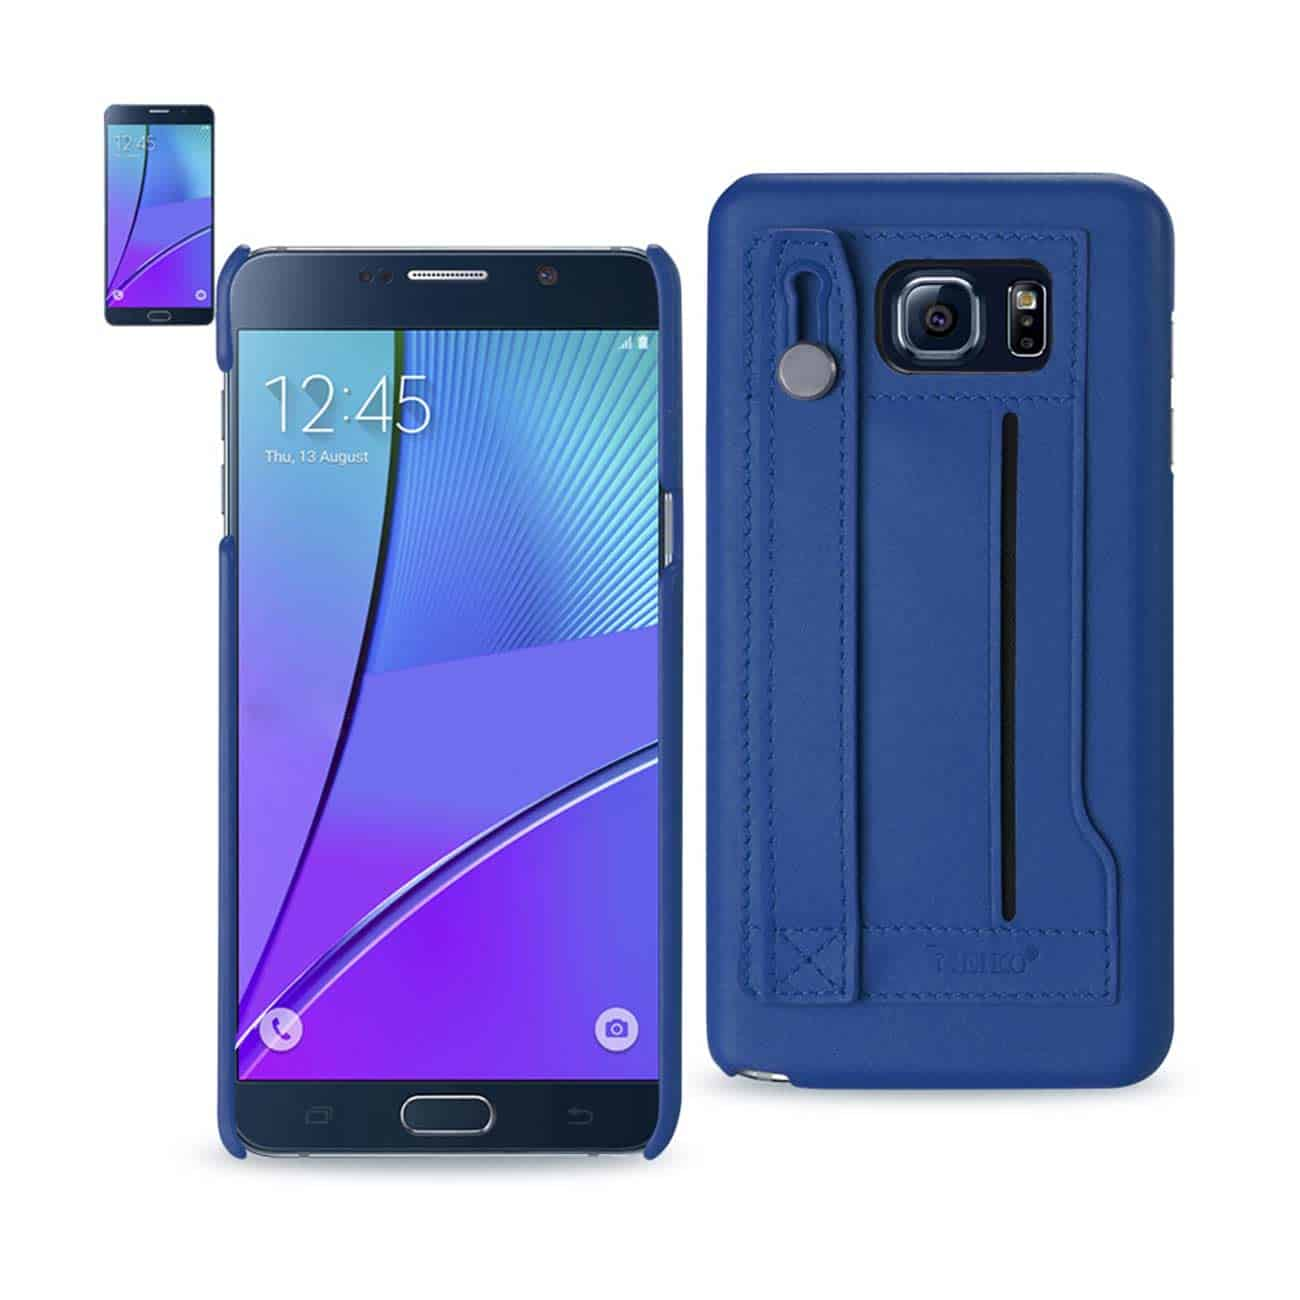 SAMSUNG GALAXY NOTE 5 GENUINE LEATHER HAND STRAP CASE IN ULTRAMARINE